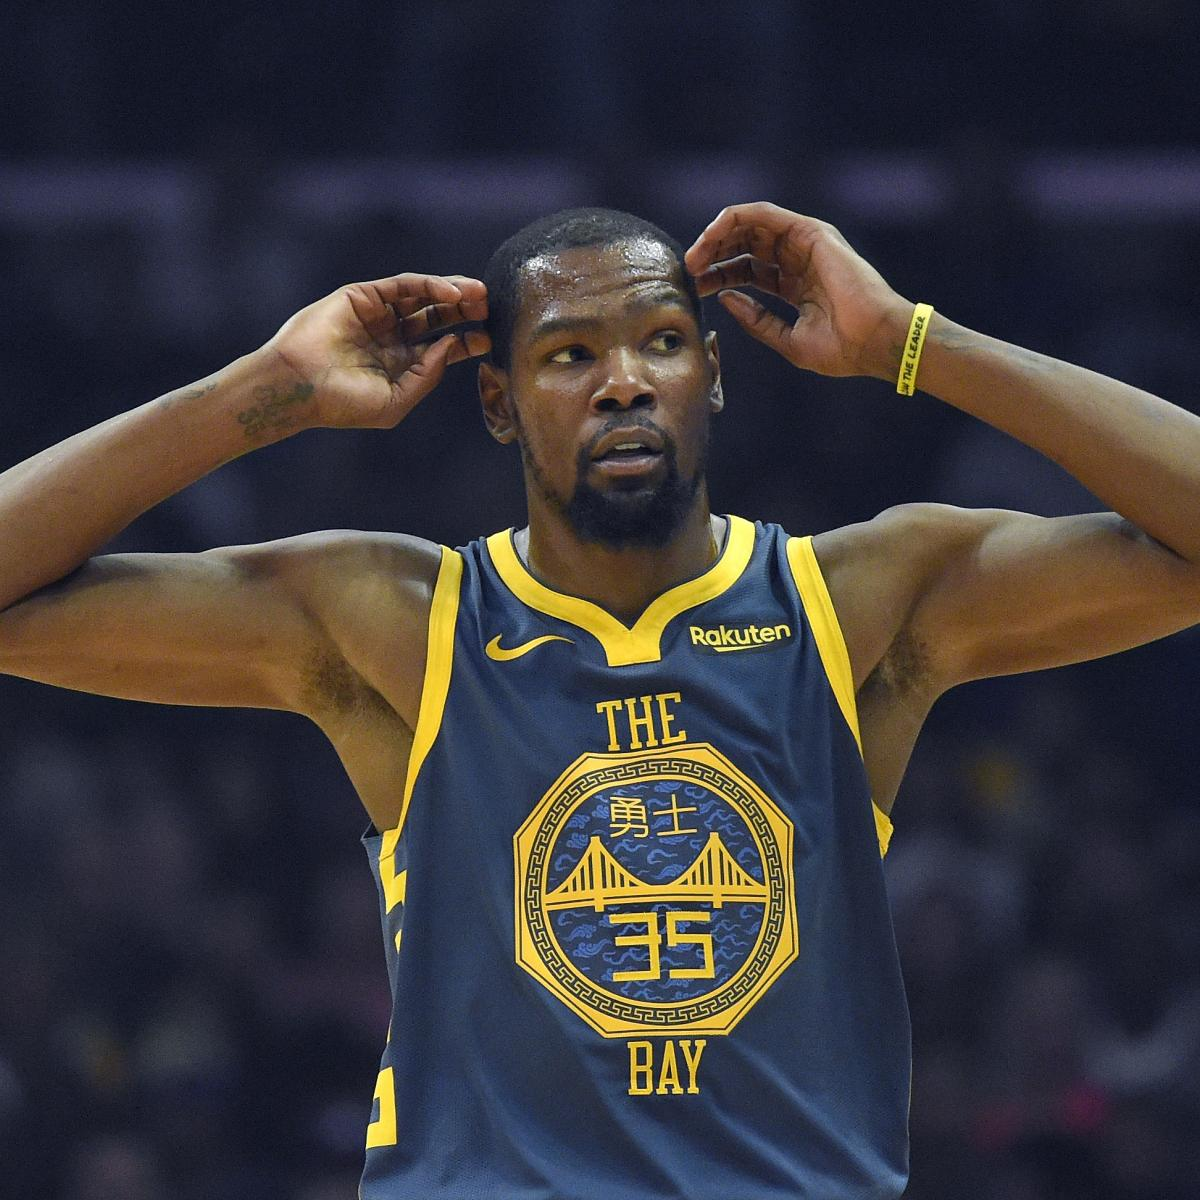 Warriors Come Out To Play Bleacher Report: Golden State Warriors Vs. Houston Rockets: Odds, Analysis